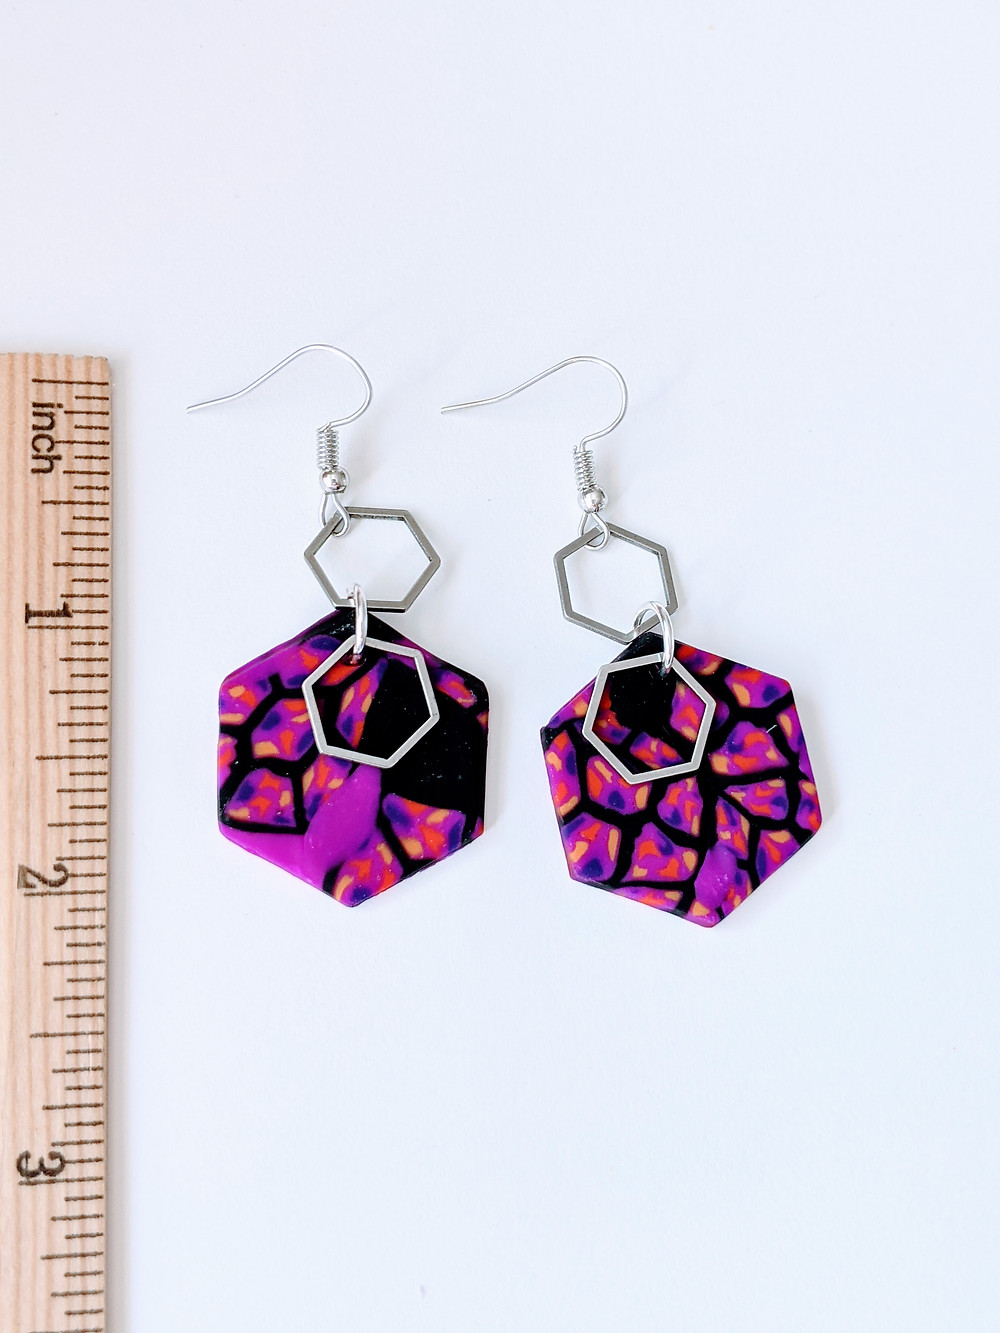 a pair of hexagon shaped earrings with purple and black design